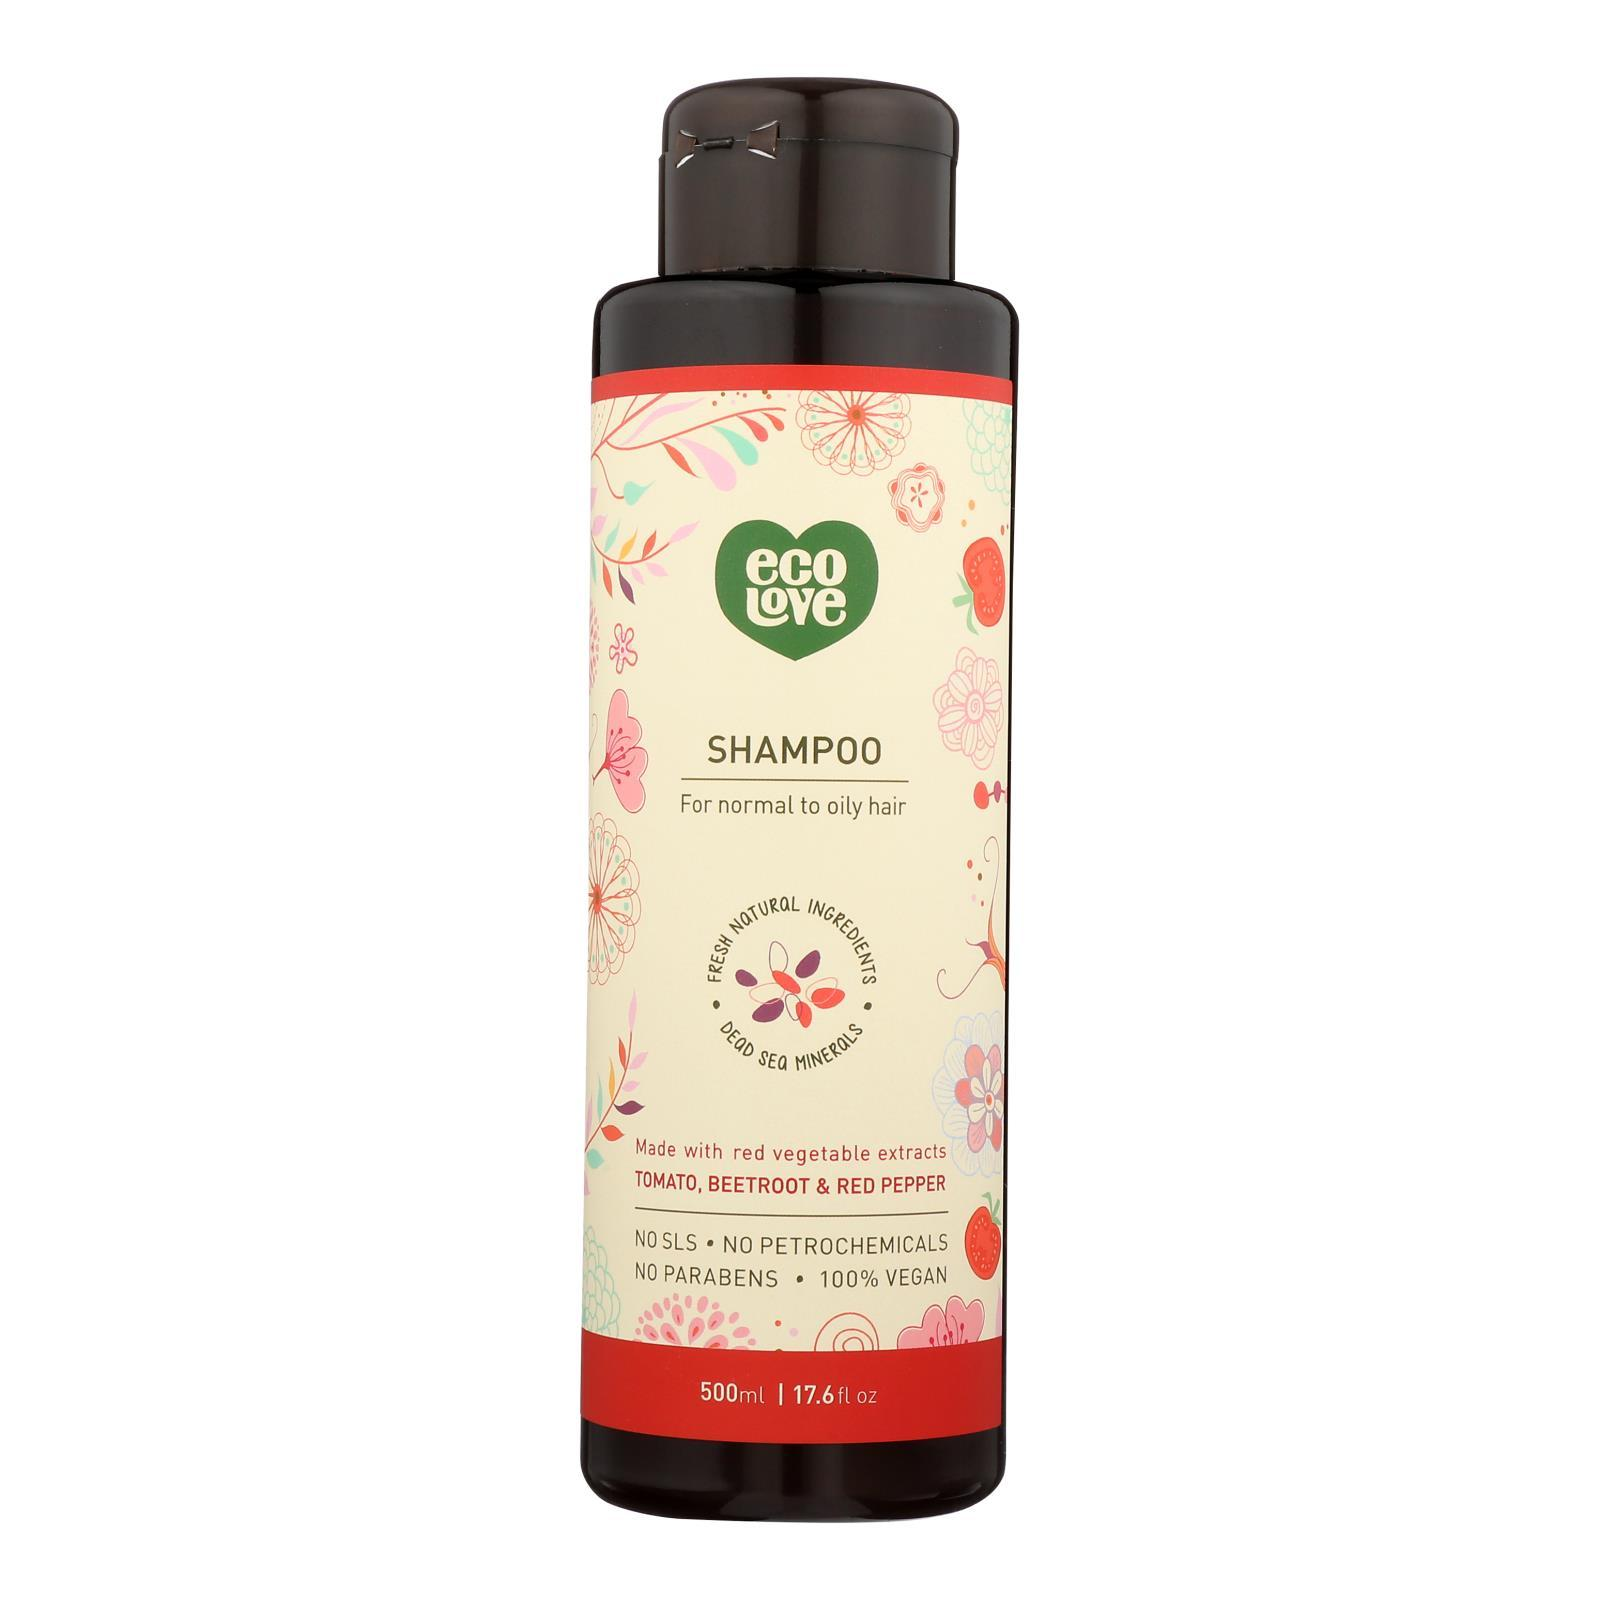 Ecolove Shampoo - Red Vegetables Shampoofor Normal To Oily Hair - Case Of 1 - 17.6 Fl Oz. - BeeGreen